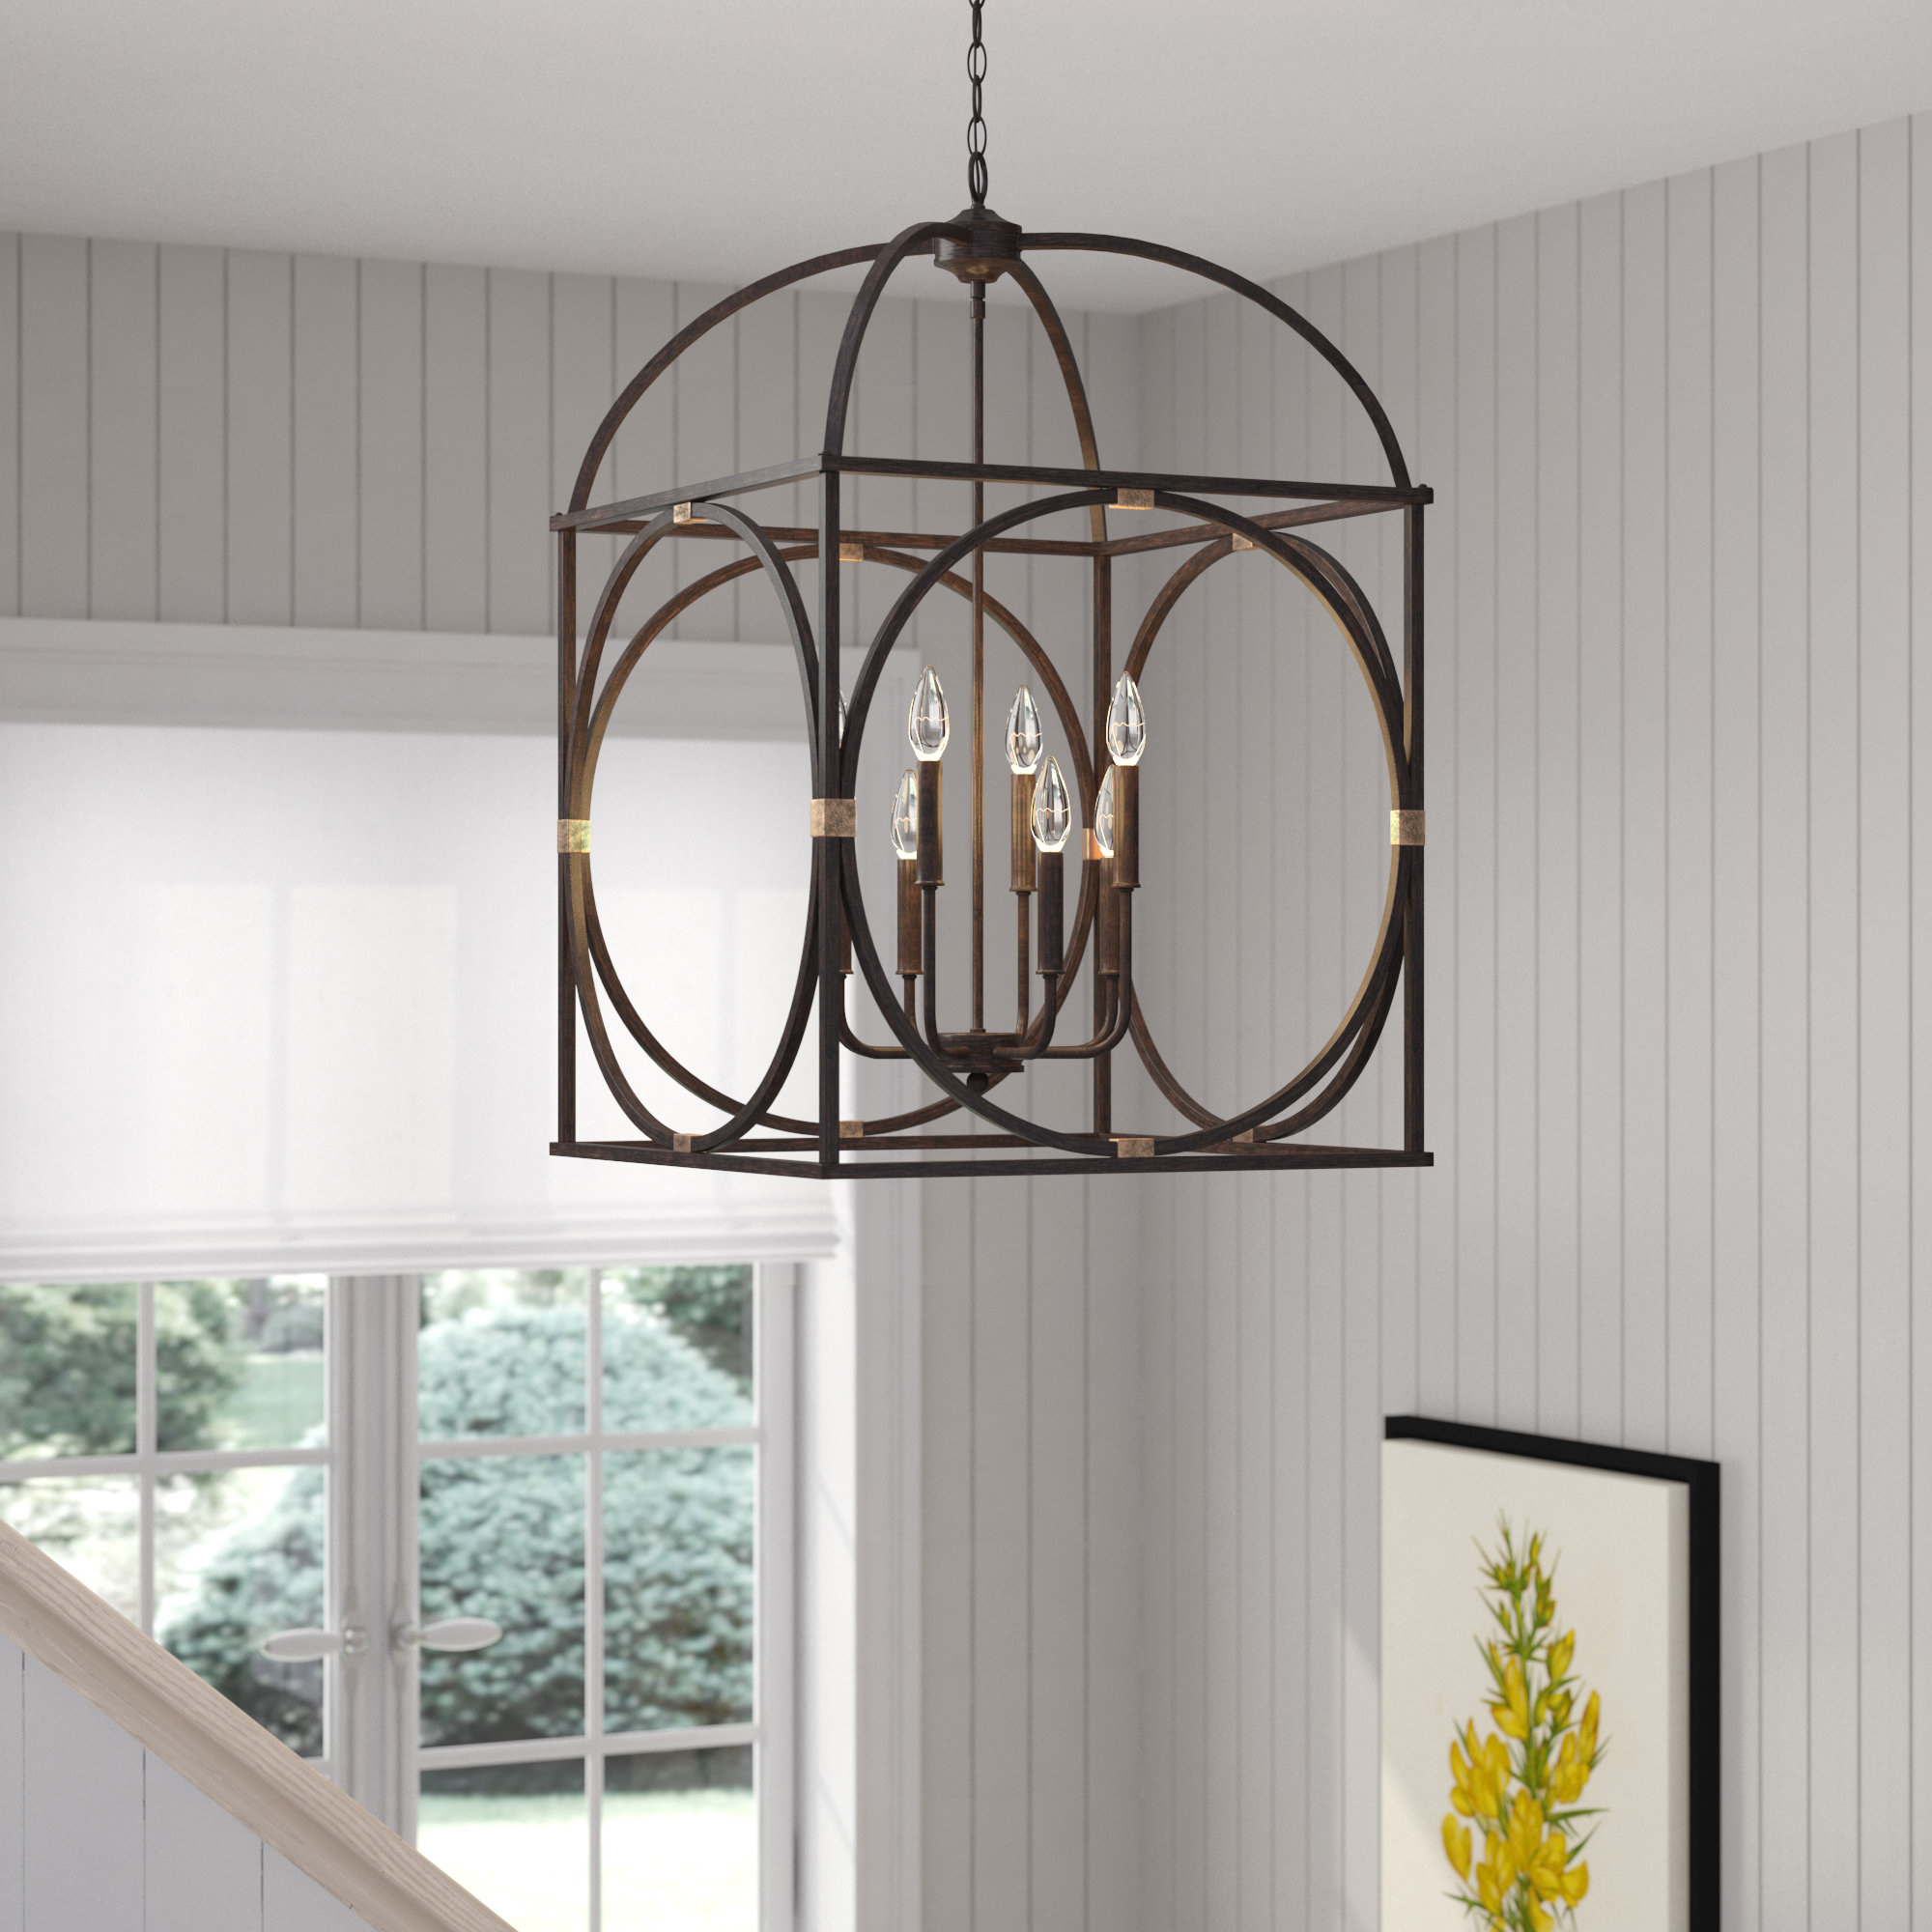 Laurel Foundry Modern Farmhouse Keene 8 Light Lantern Within Most Popular Taya 4 Light Lantern Square Pendants (View 20 of 25)